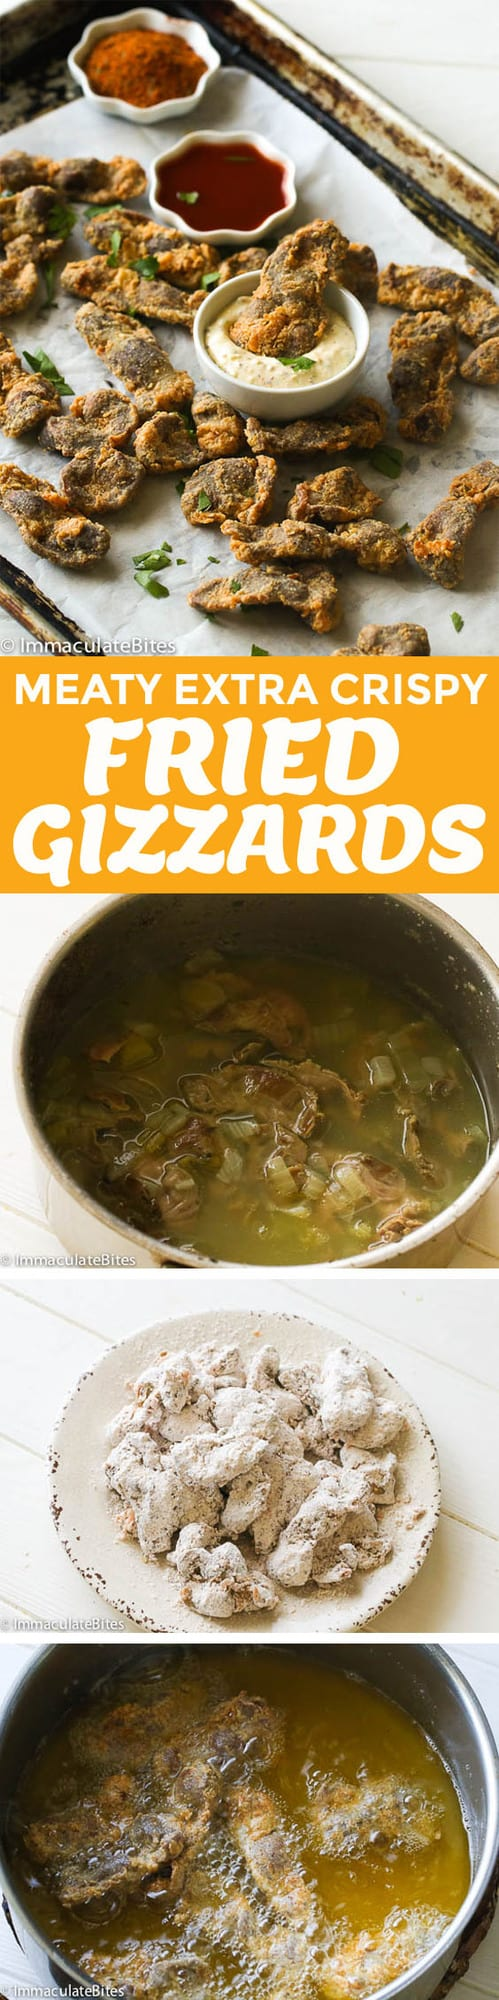 fried gizzards with cooking steps